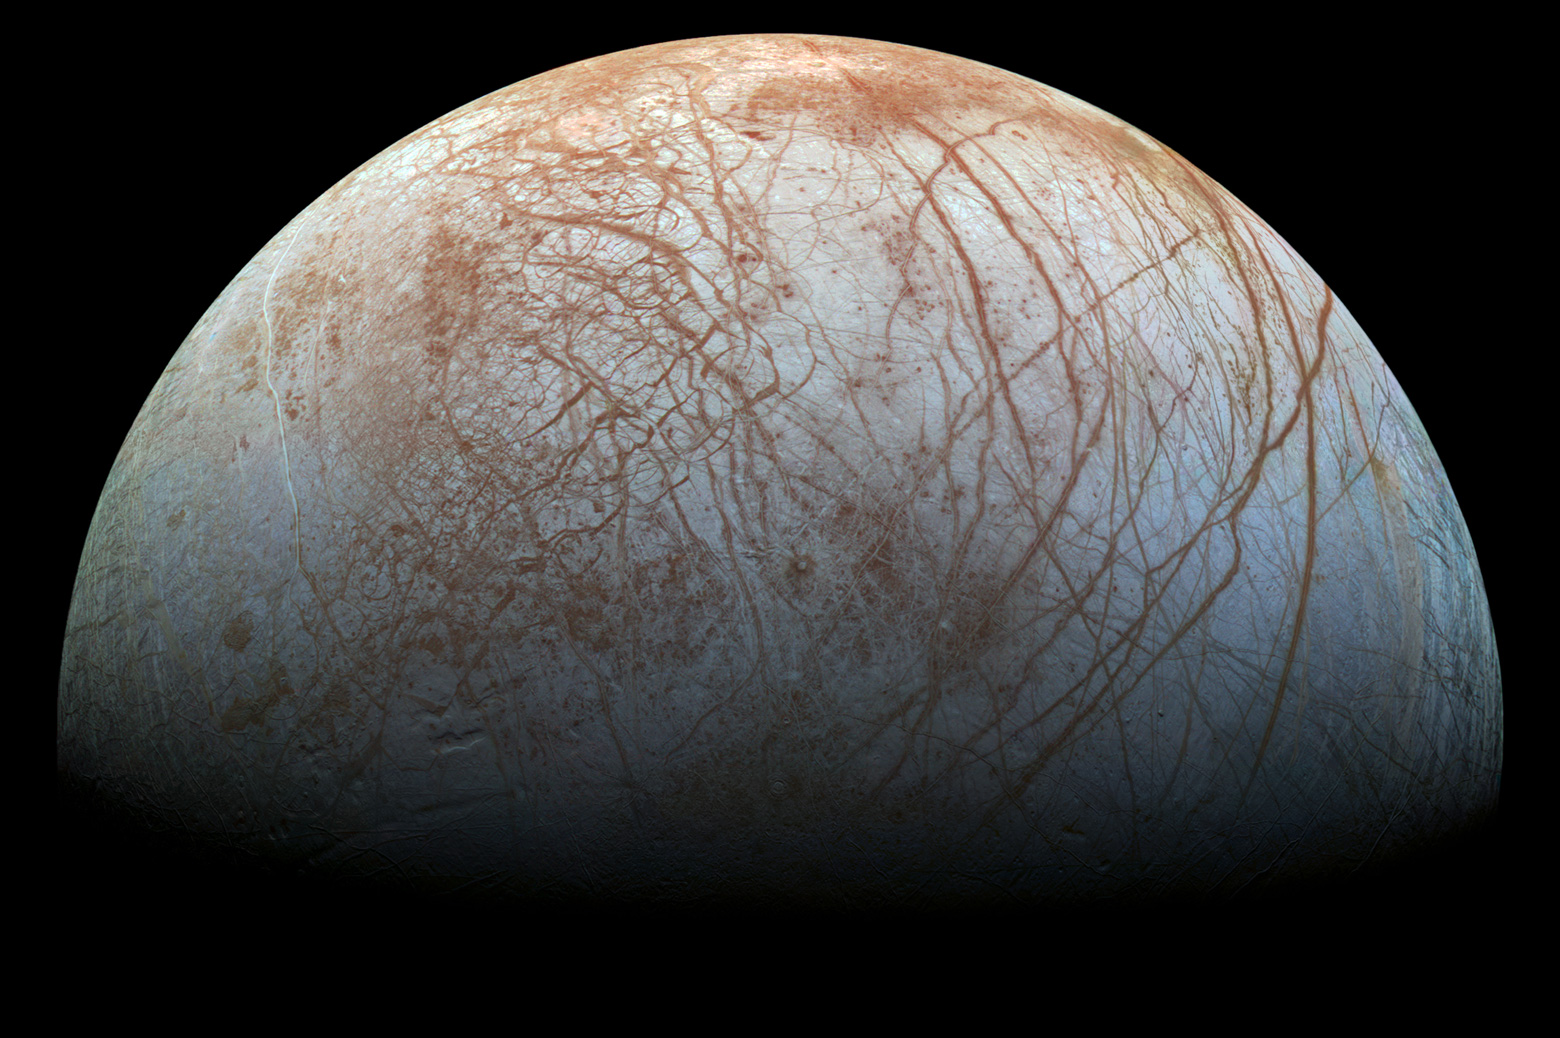 Jupiter's moon Europa viewed from space